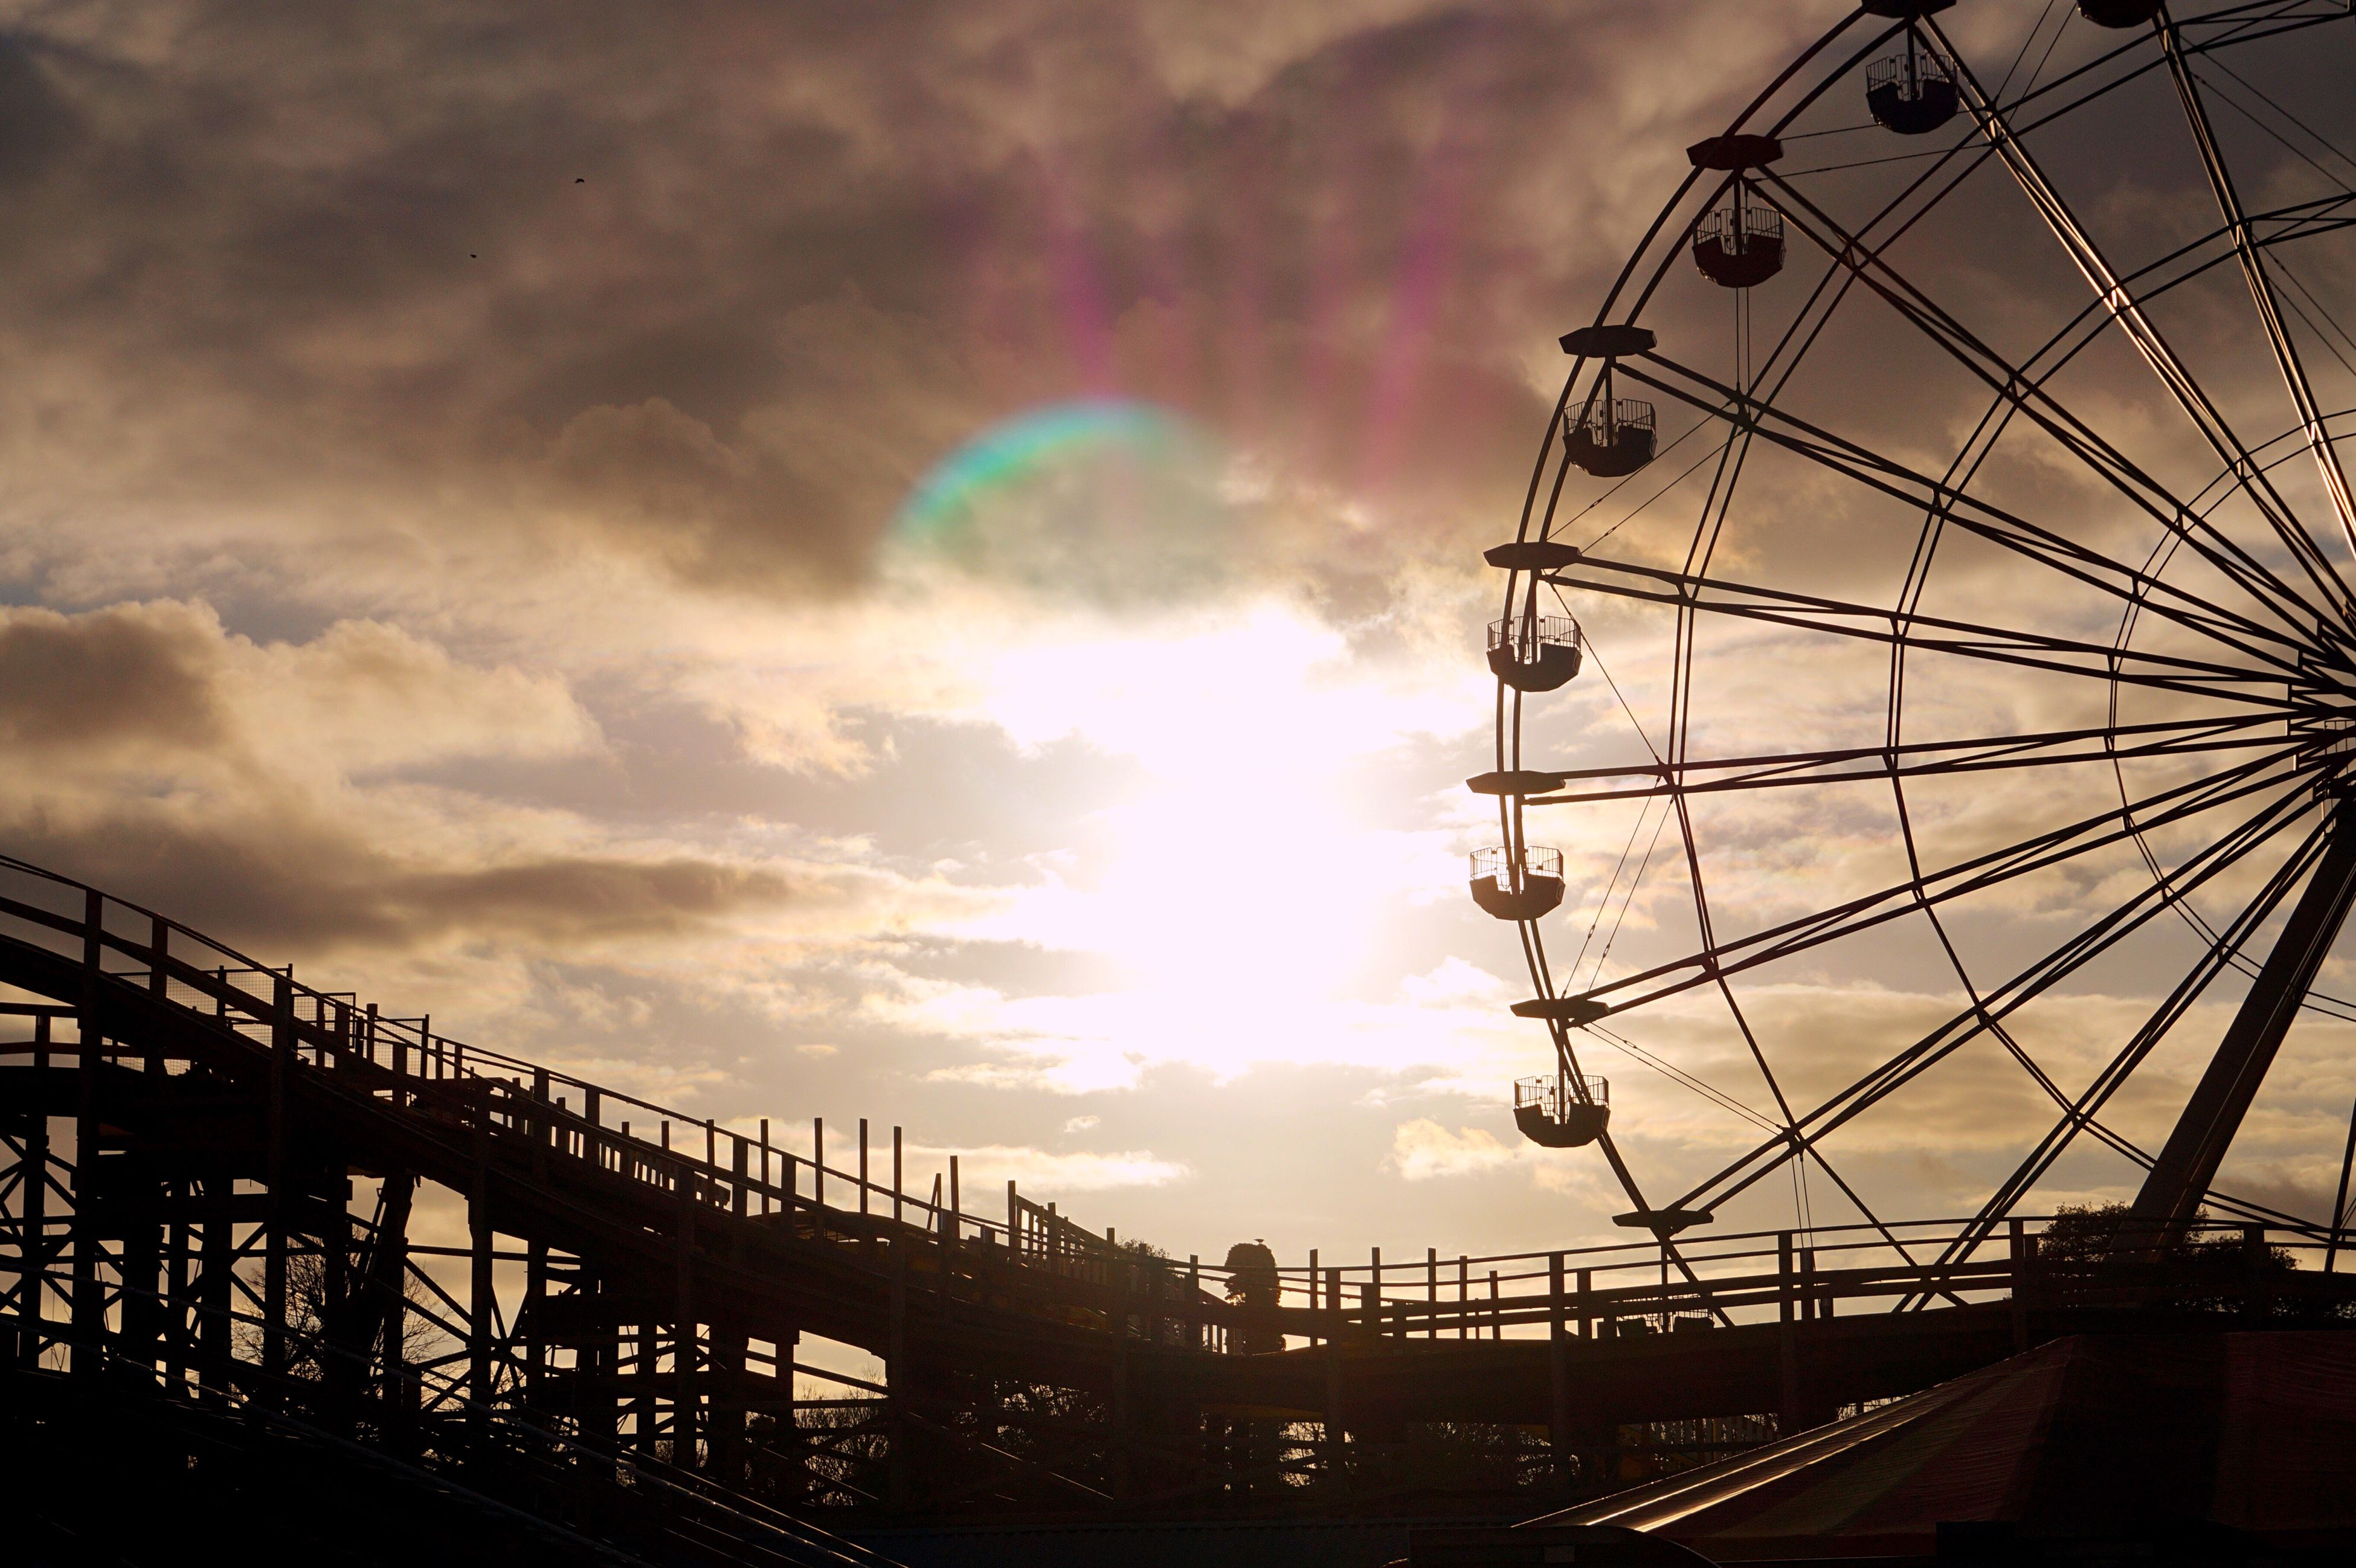 low angle view, sky, built structure, ferris wheel, cloud - sky, amusement park, cloud, amusement park ride, architecture, engineering, city, cloudy, outdoors, day, bridge, cloudscape, outline, no people, scenics, big wheel